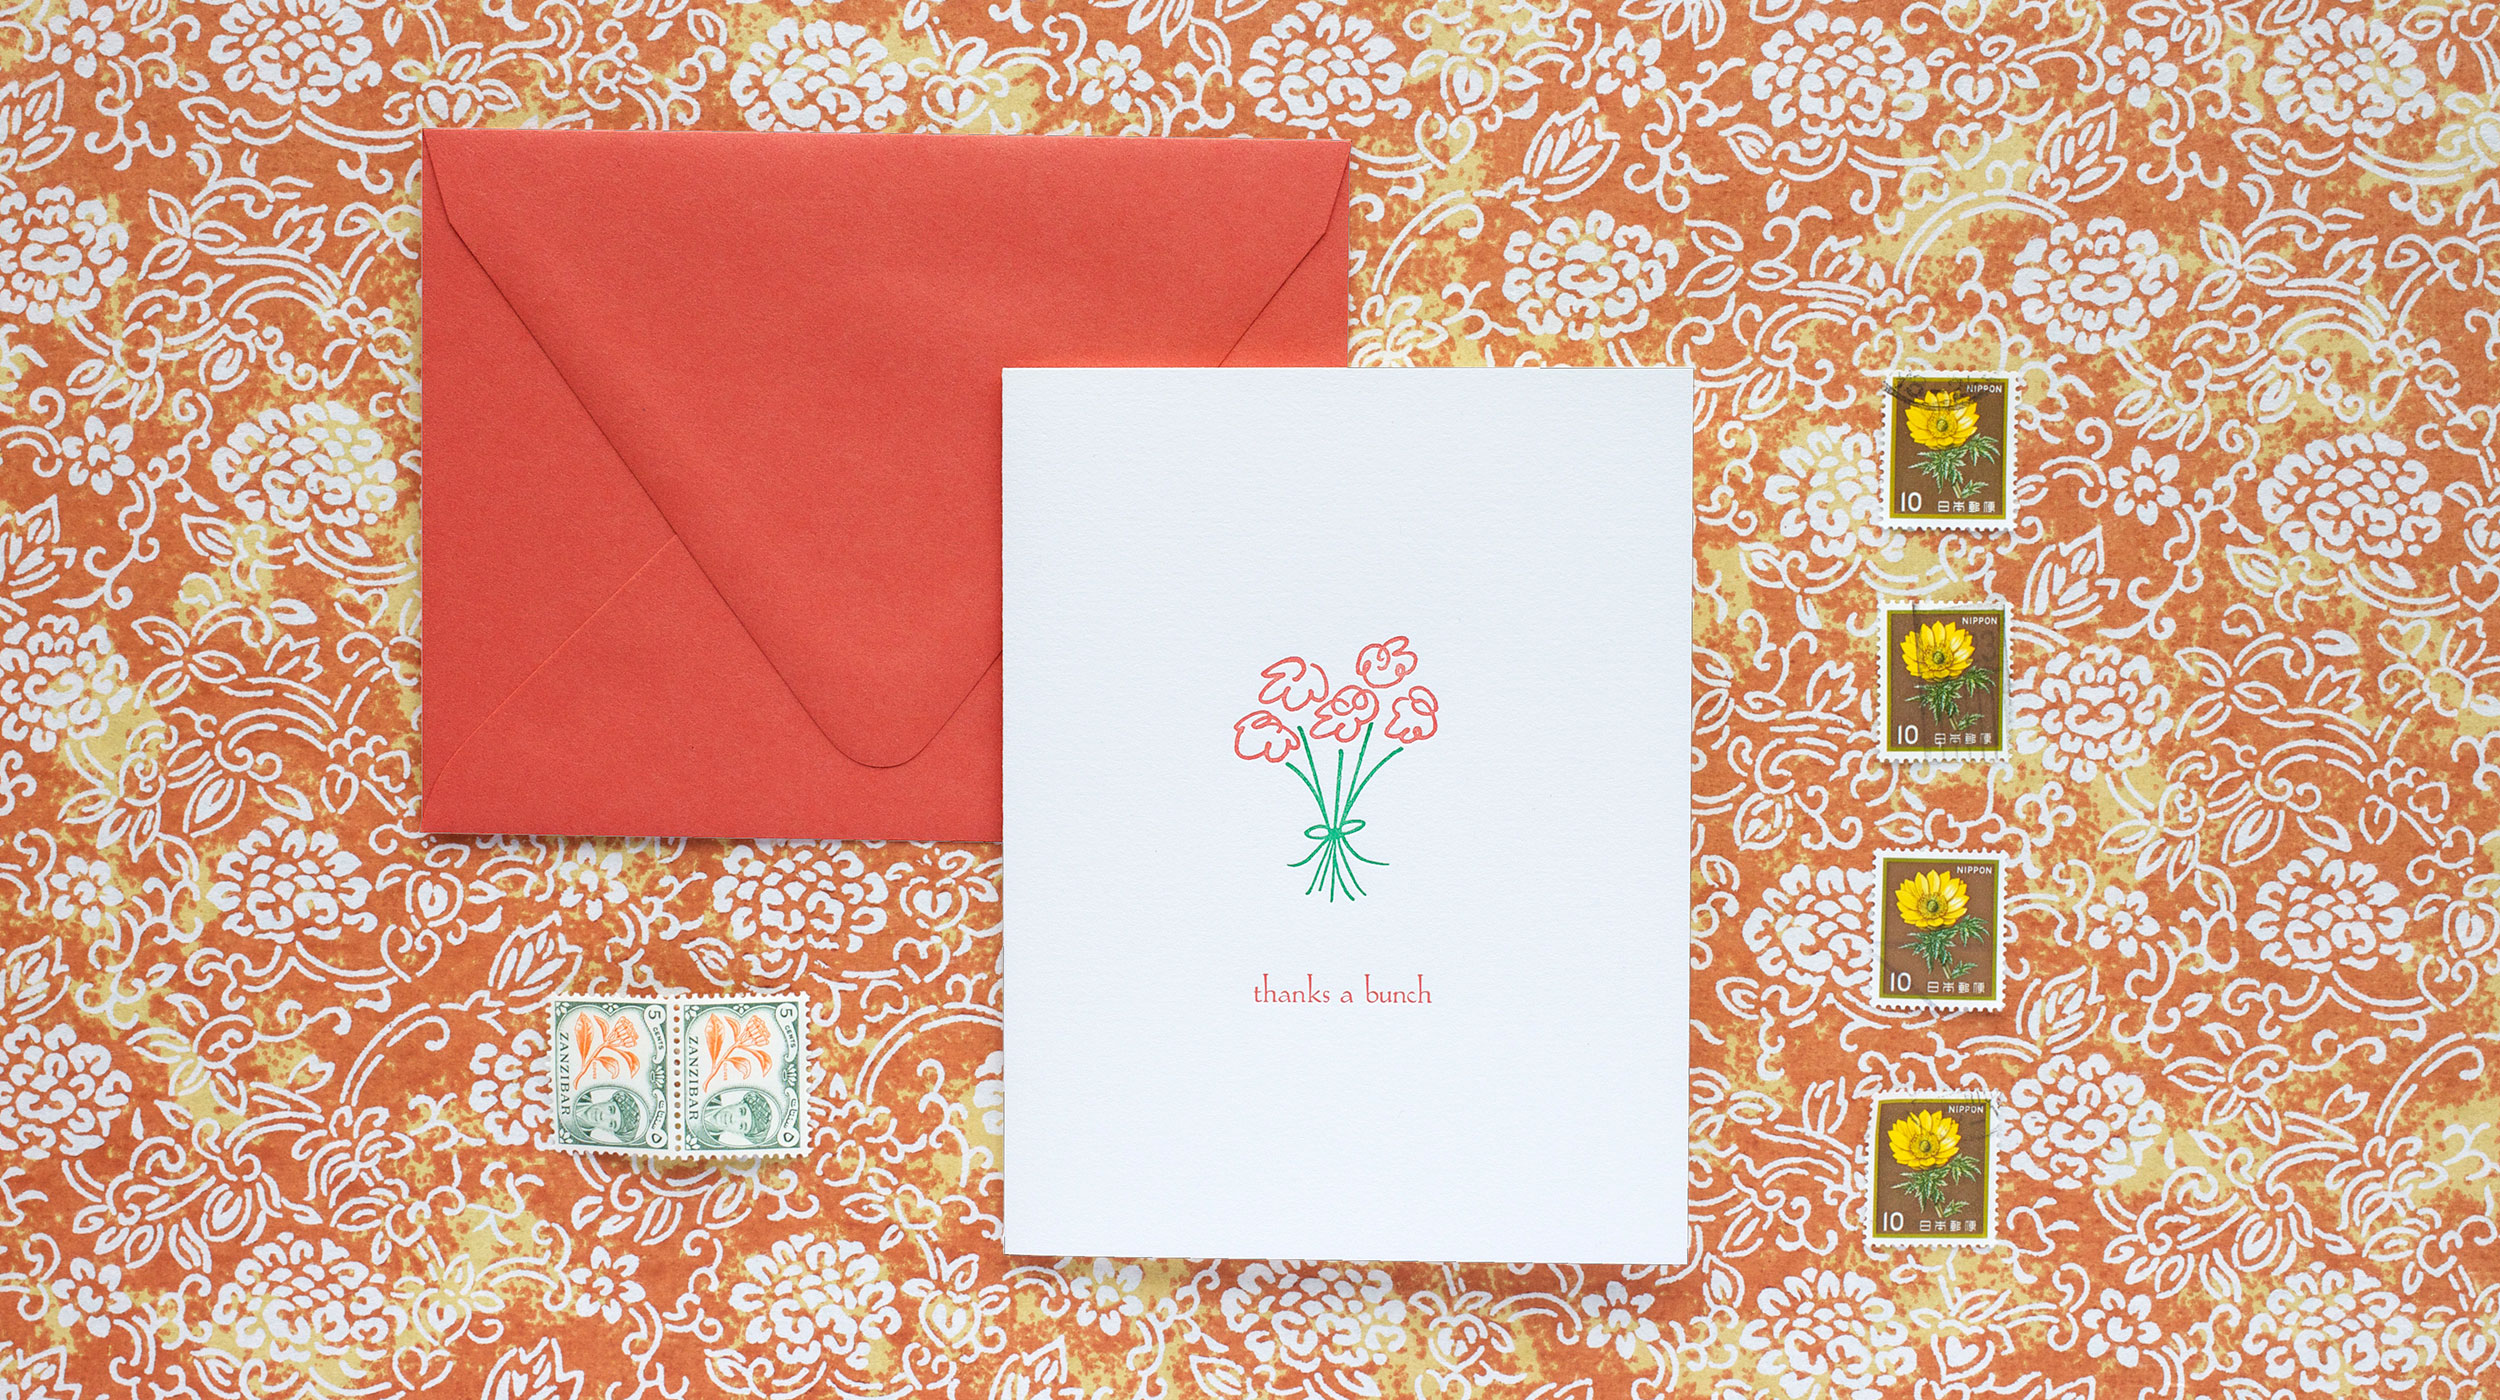 products-lines-thanksflowers.jpg